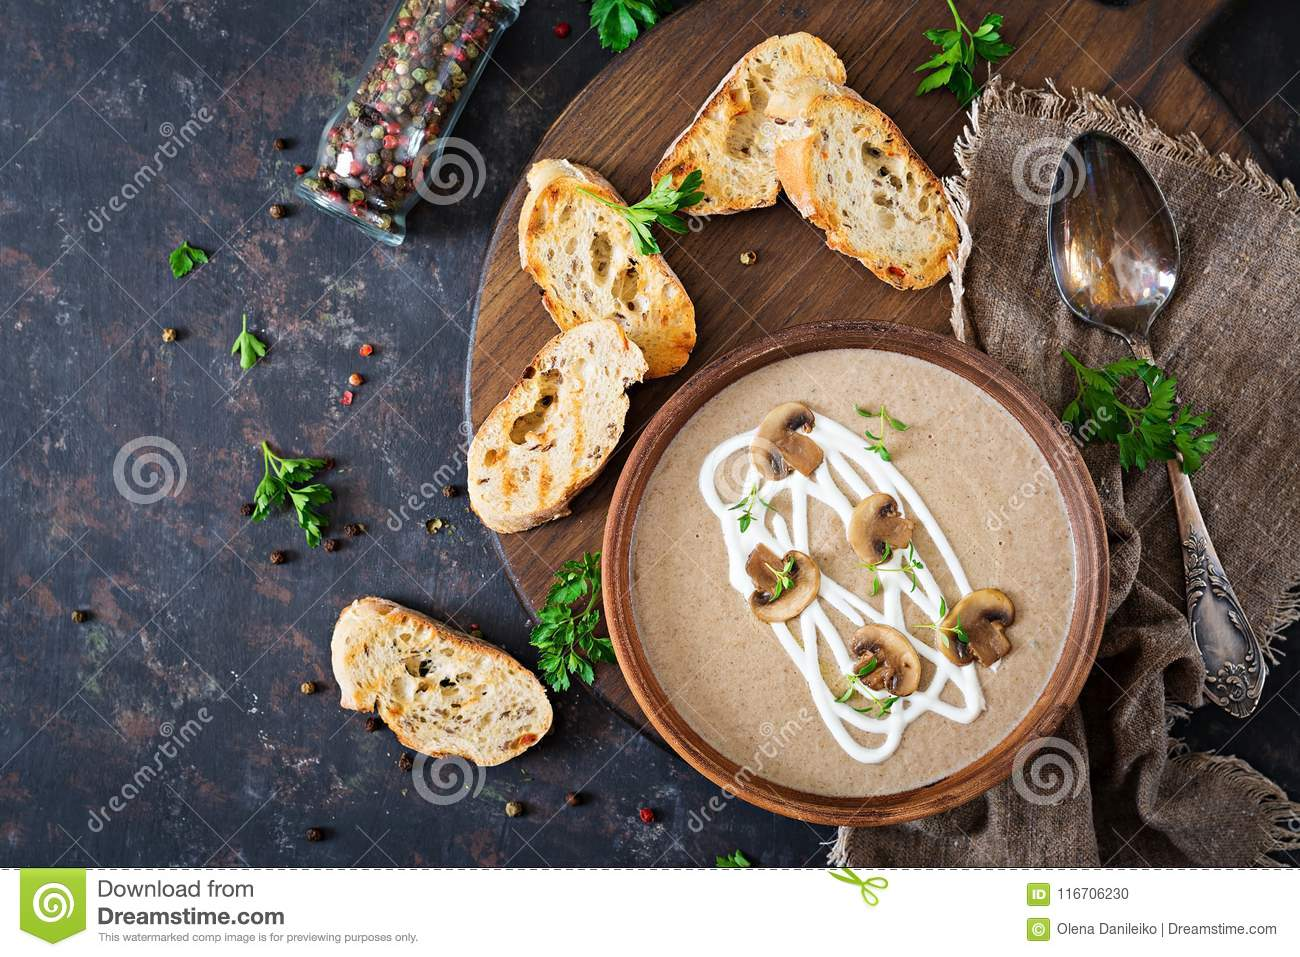 Mushroom cream soup. Vegan food. Dietary menu. Top view